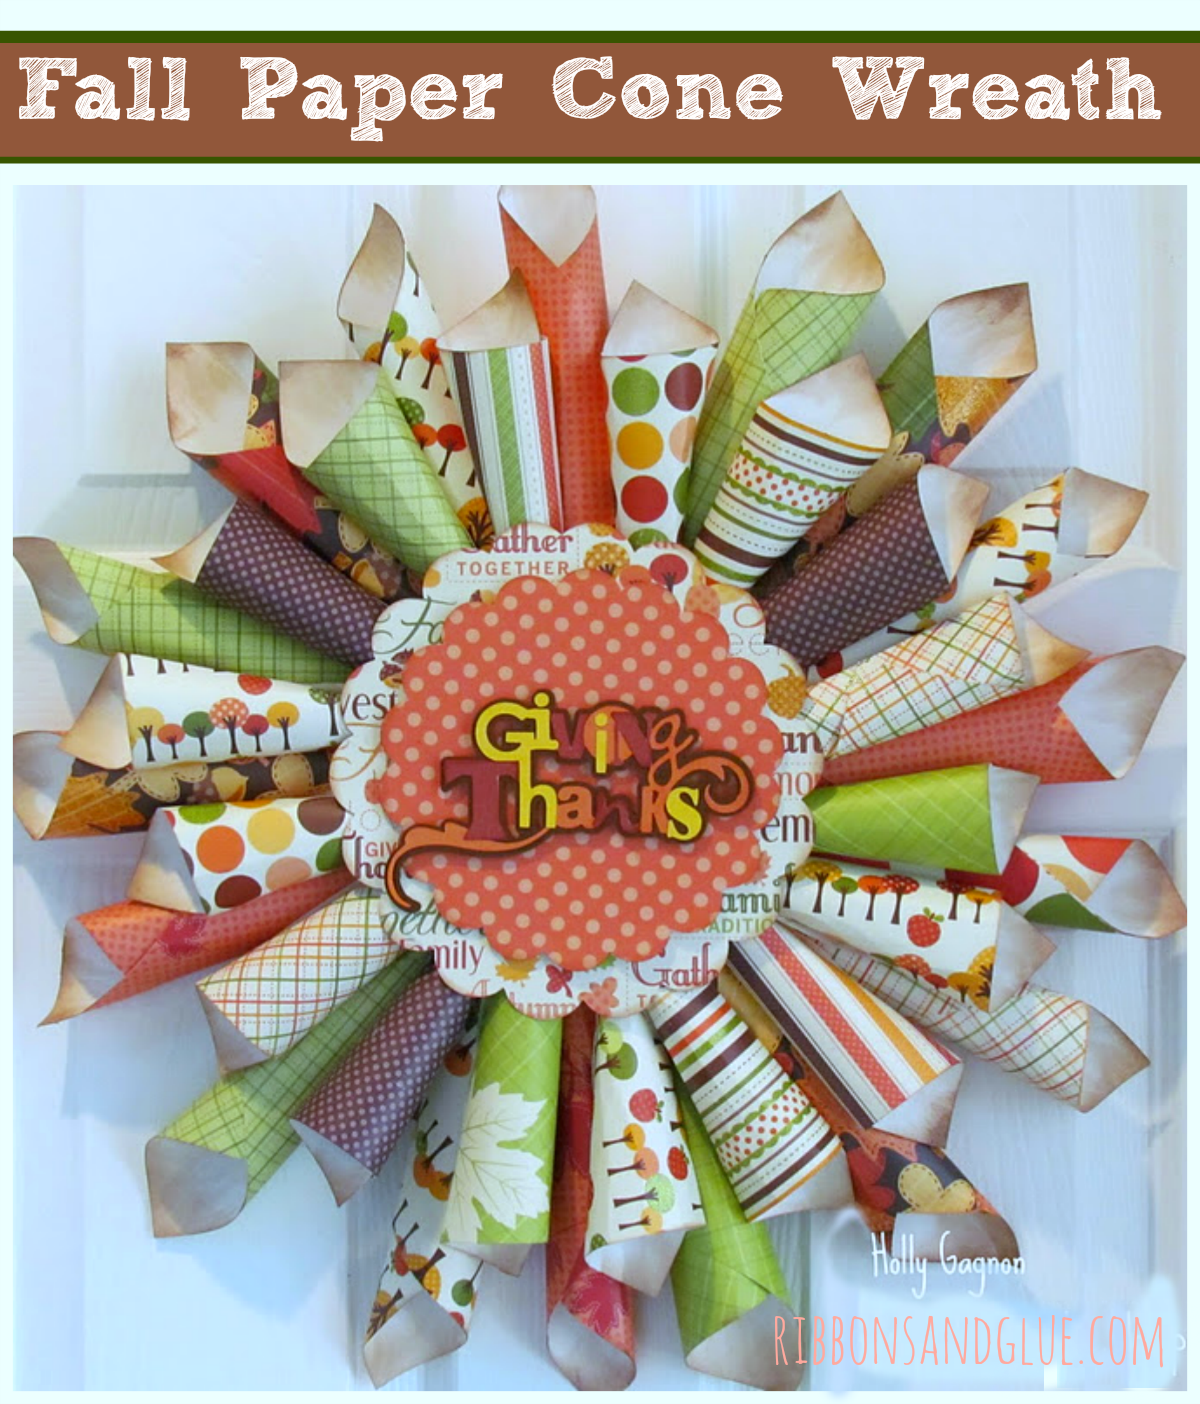 Fall Paper Cone Wreath made from rolled paper cones. So pretty for Fall!